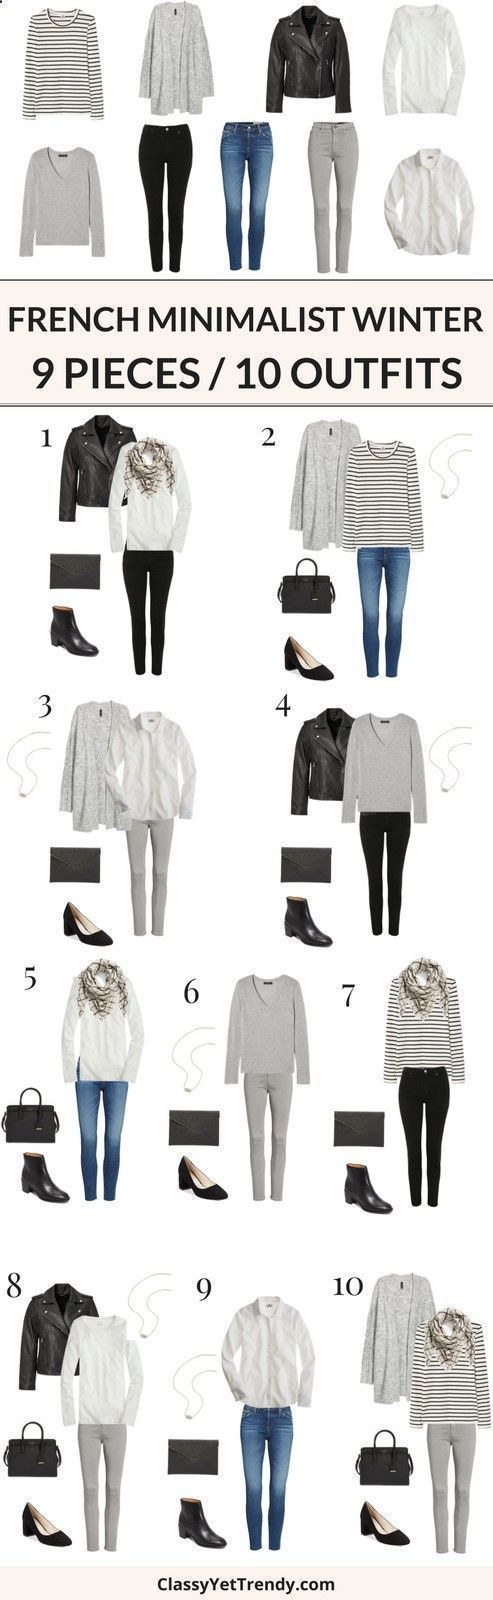 Combine Jewelry With Clothing – 9 Pieces / 10 Outfits (French Minimalist Winter